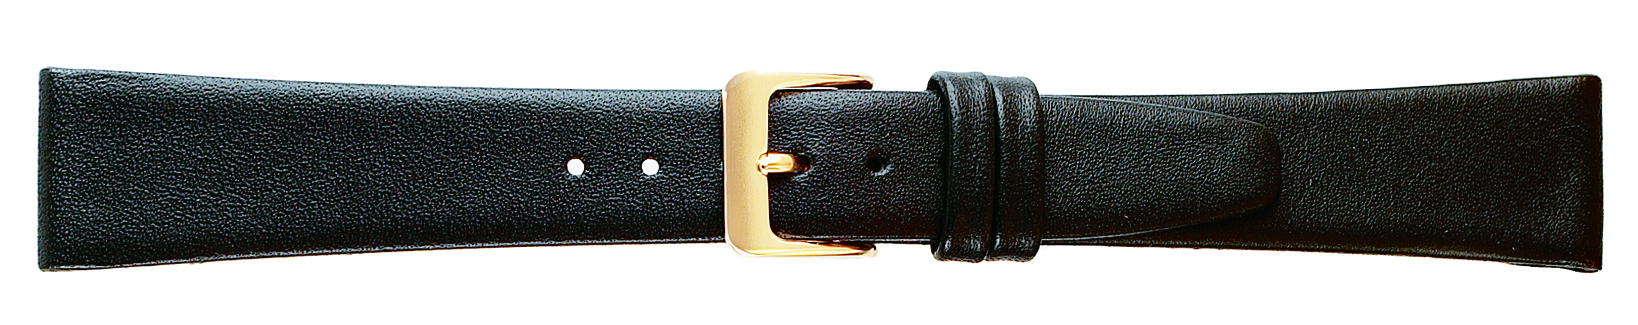 16MM Leather Band Black Smooth Calf Short-0